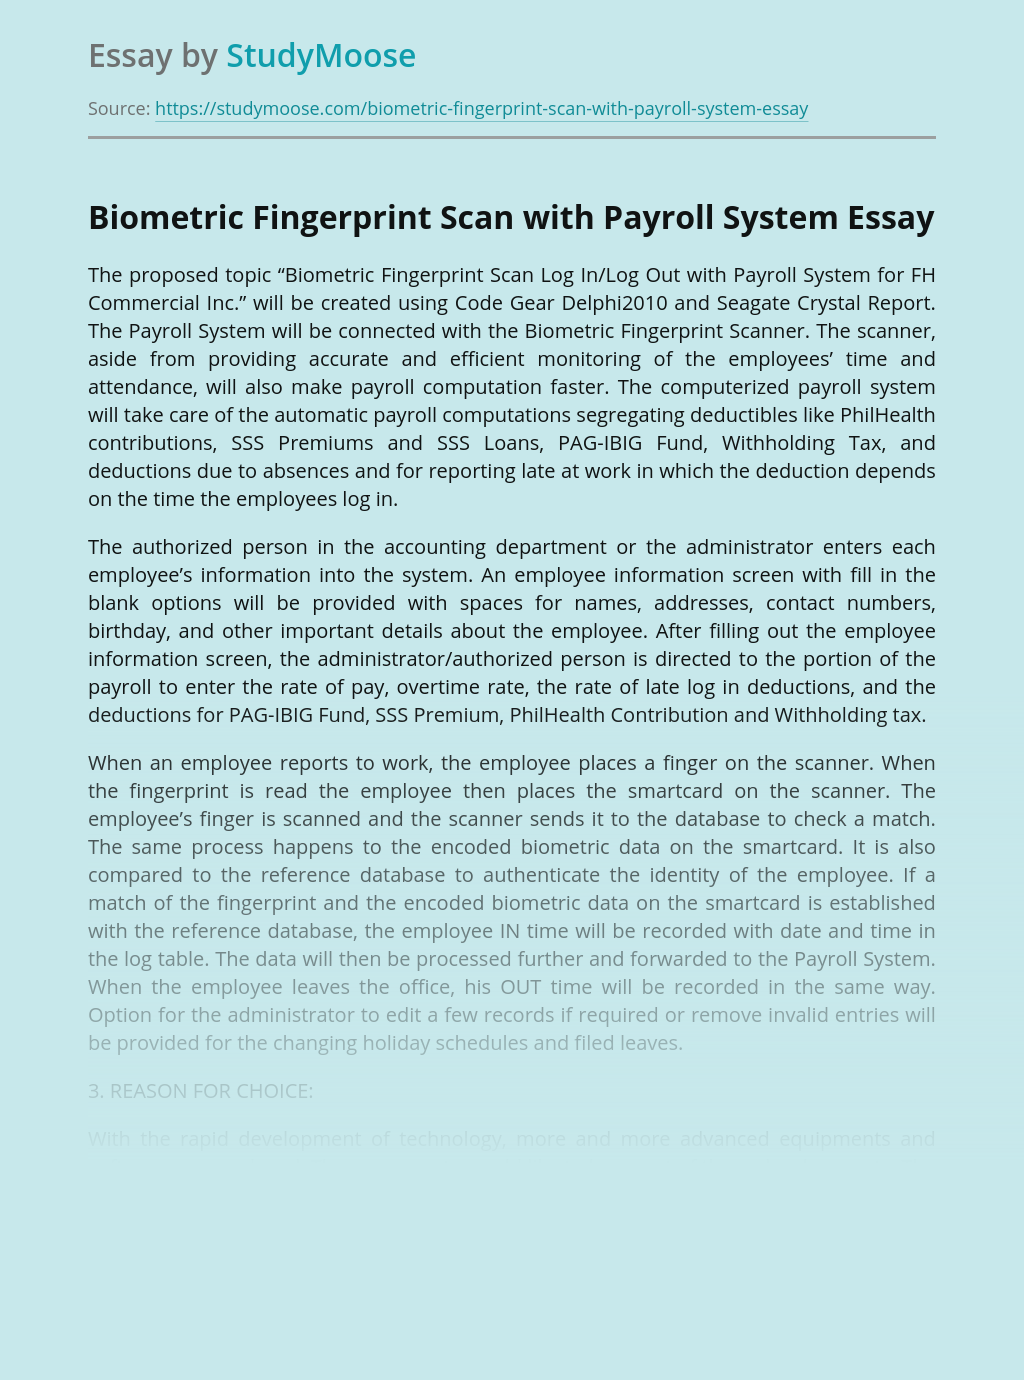 Biometric Fingerprint Scan with Payroll System